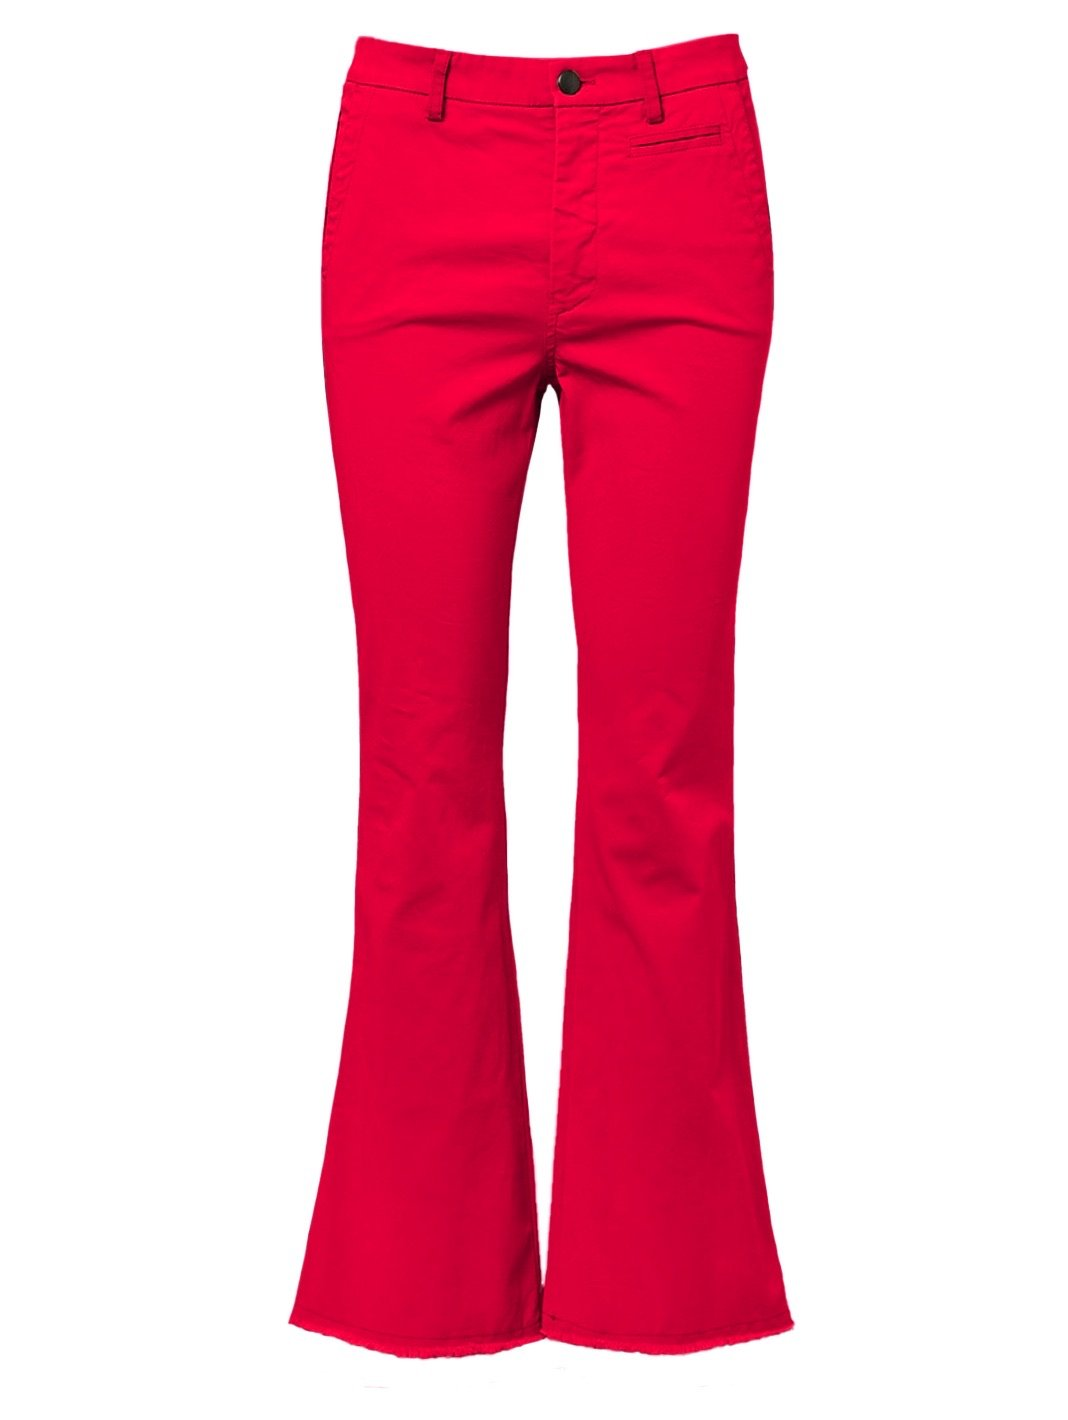 Sequin Side-Stripes Gabardine Pants - The Bobby Boga